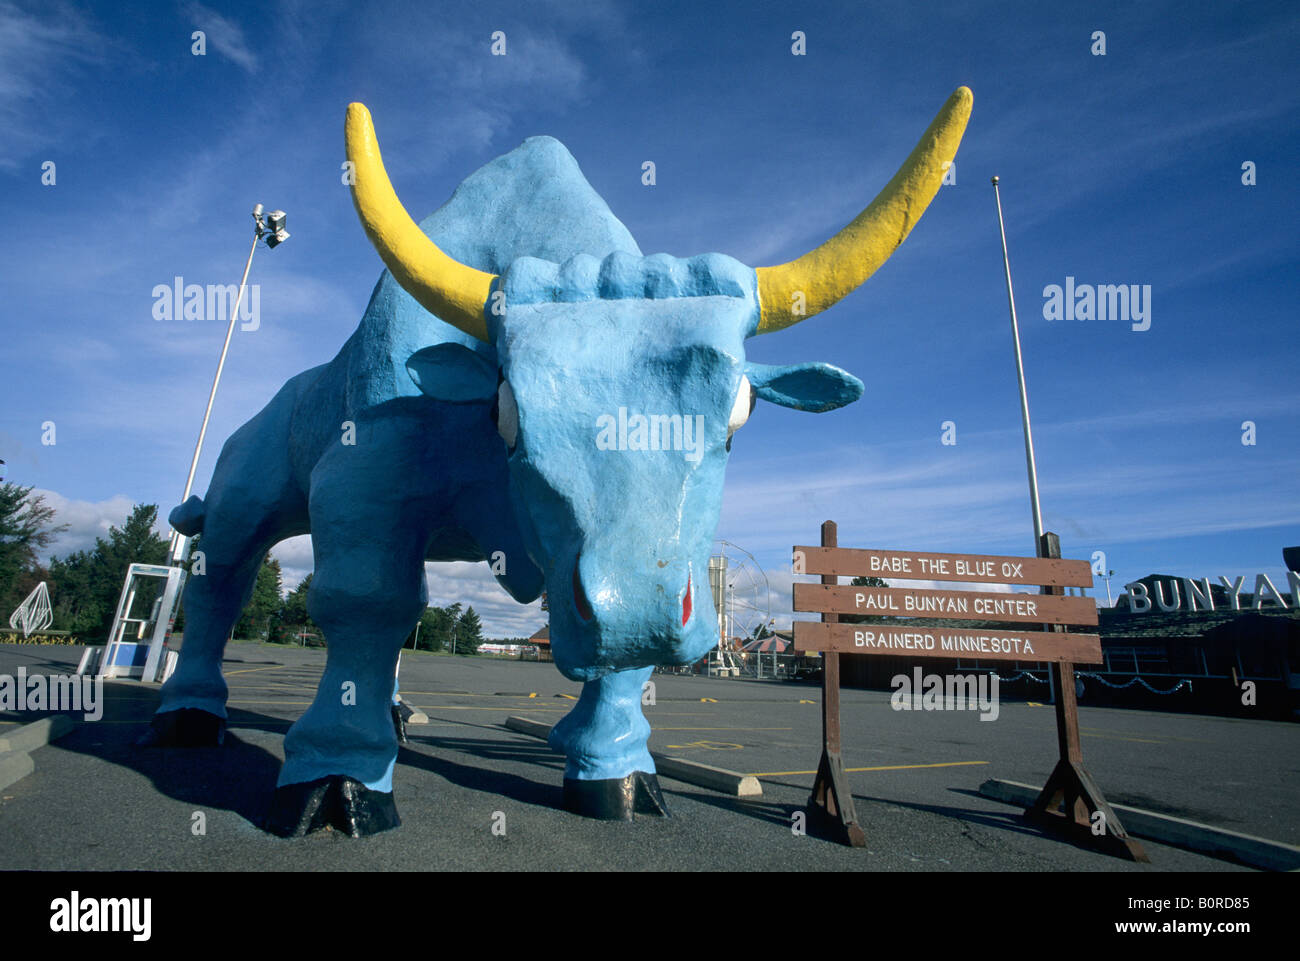 BABE THE BLUE OX AT THE PAUL BUNYAN CENTER, BRAINERD, MINNESOTA. SUMMER. - Stock Image